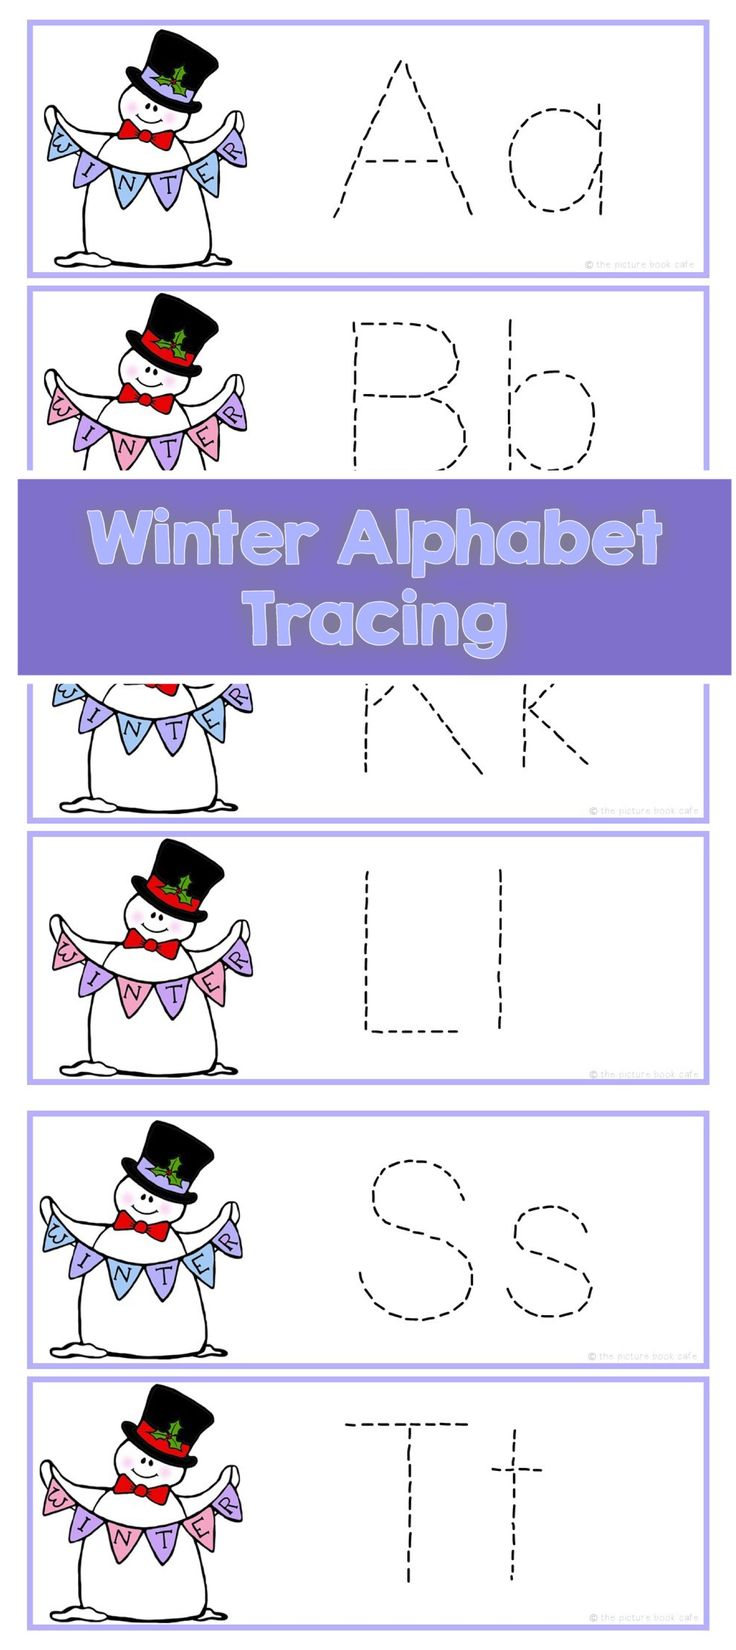 Winter Alphabet Letter Tracing